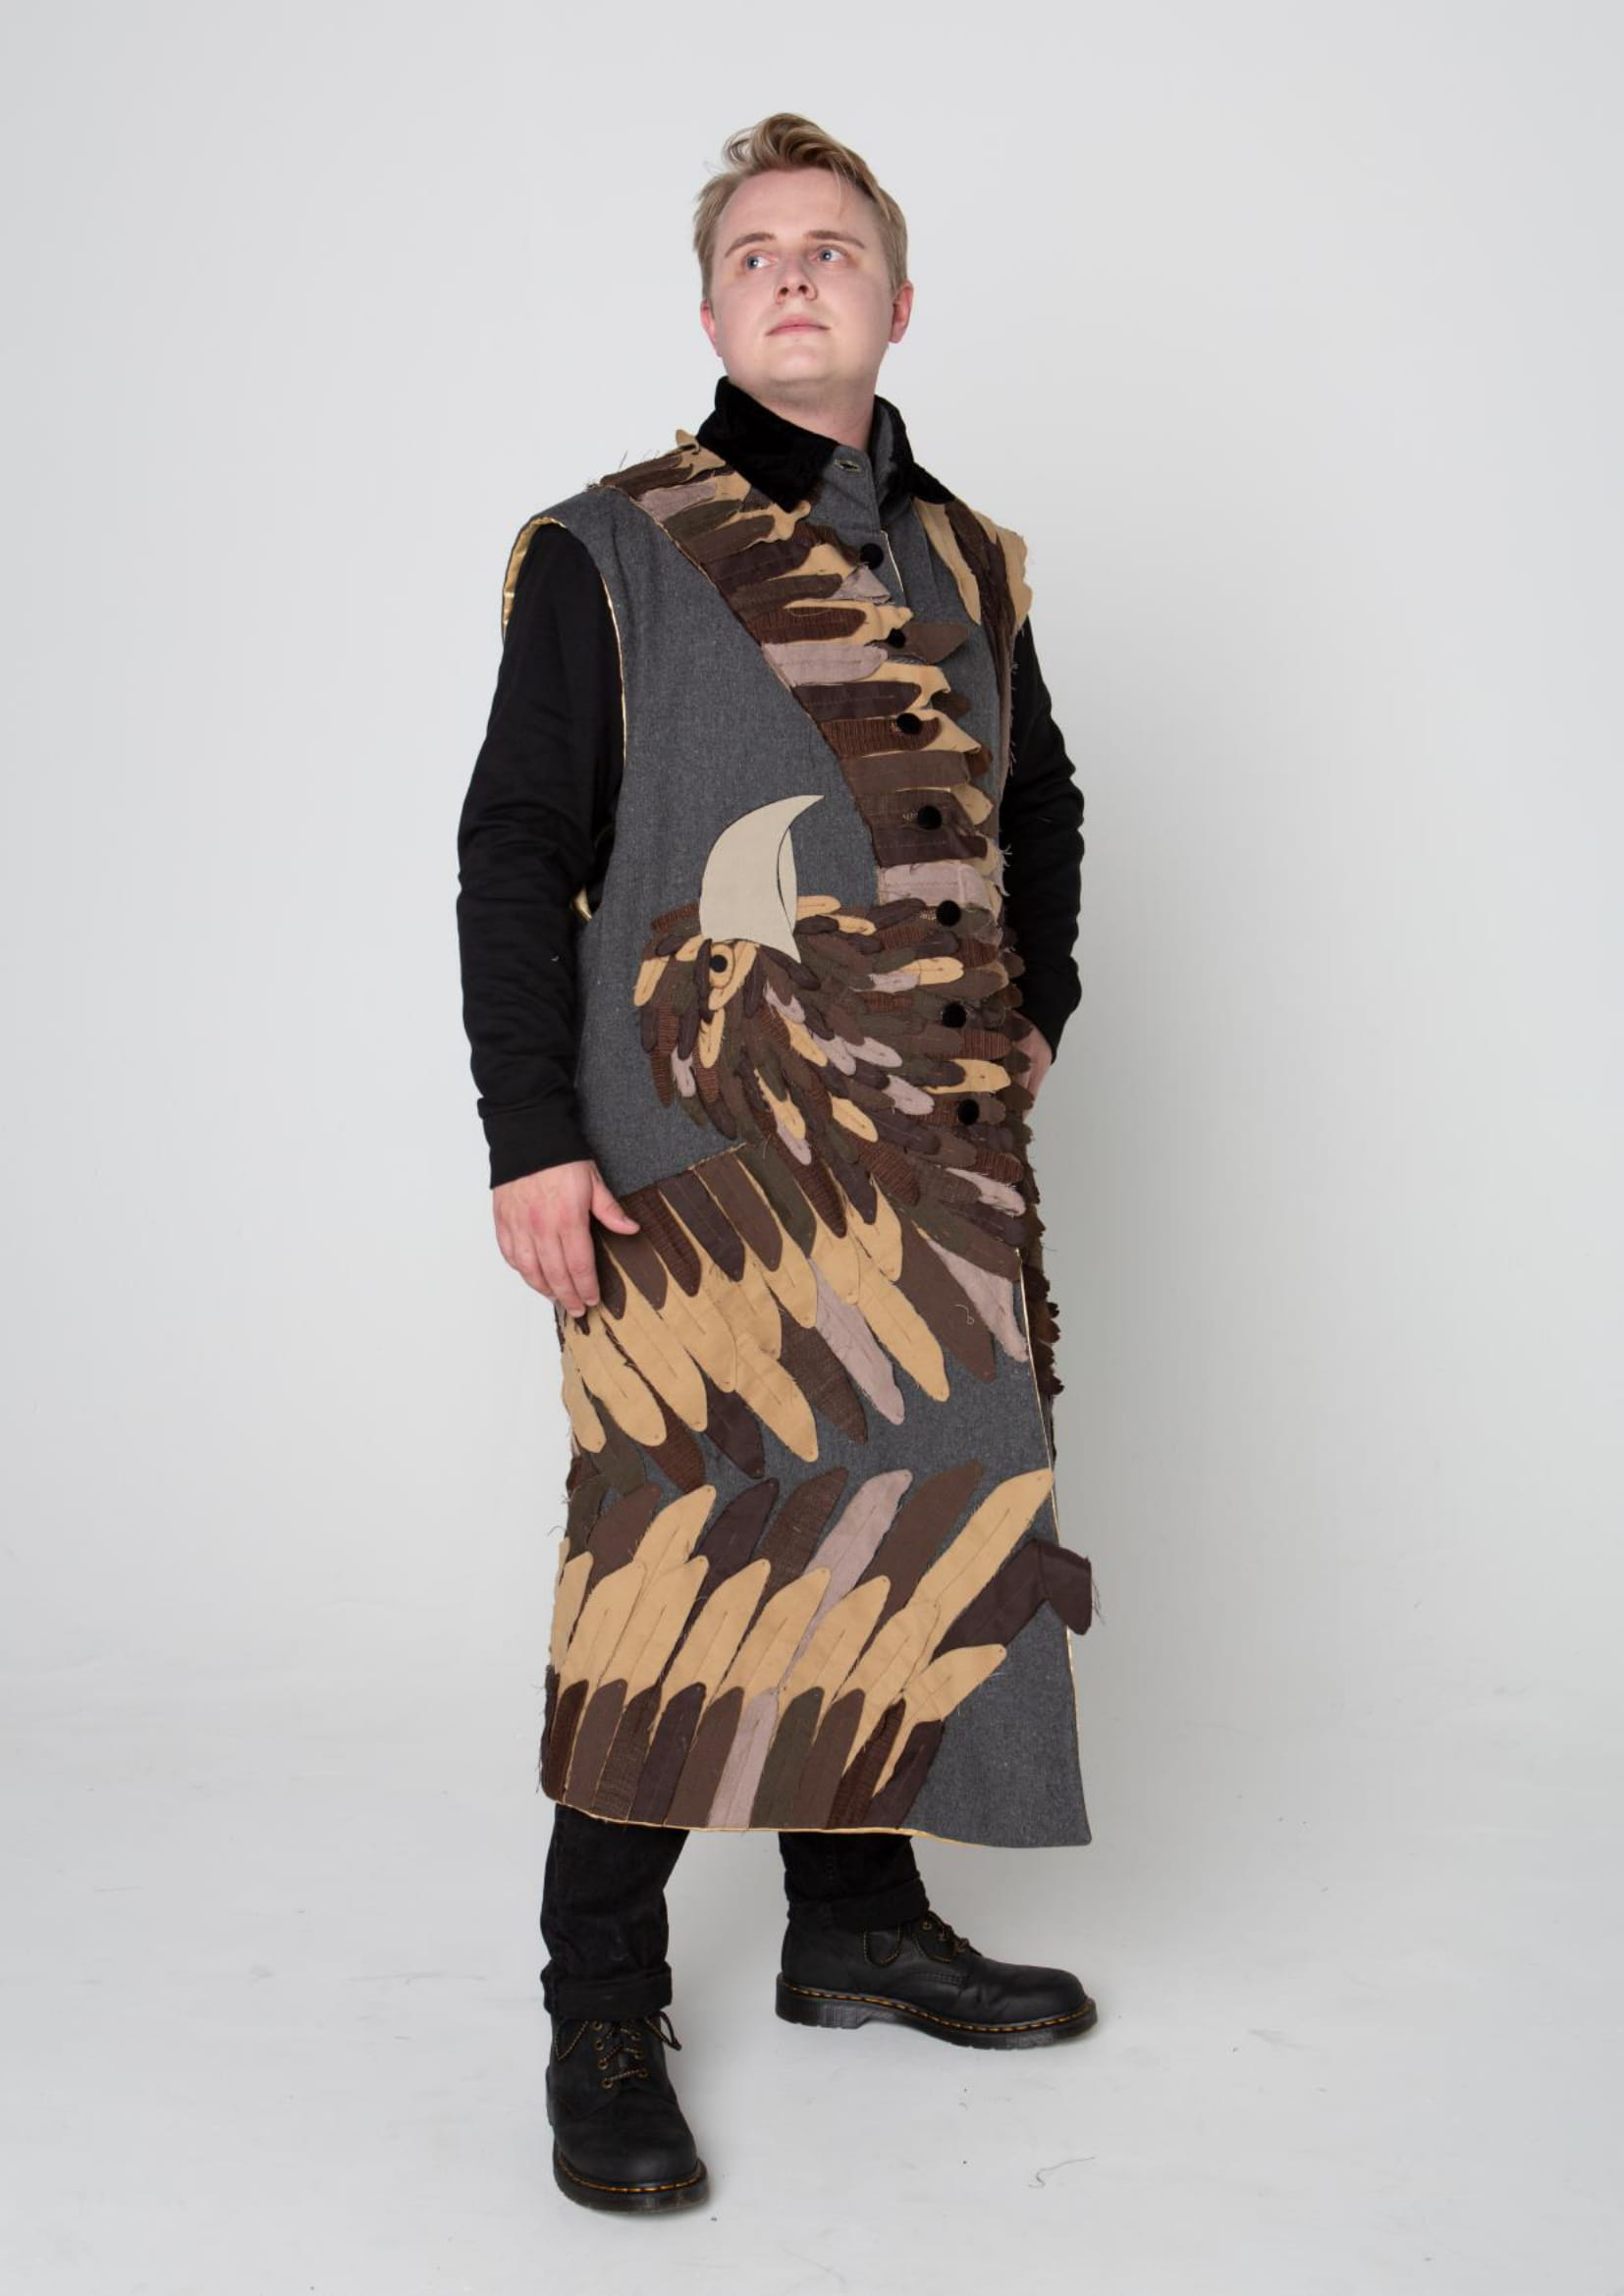 Costume for the character of 'King Duncan' for the production of 'Macbeth' by the Actors Wheel